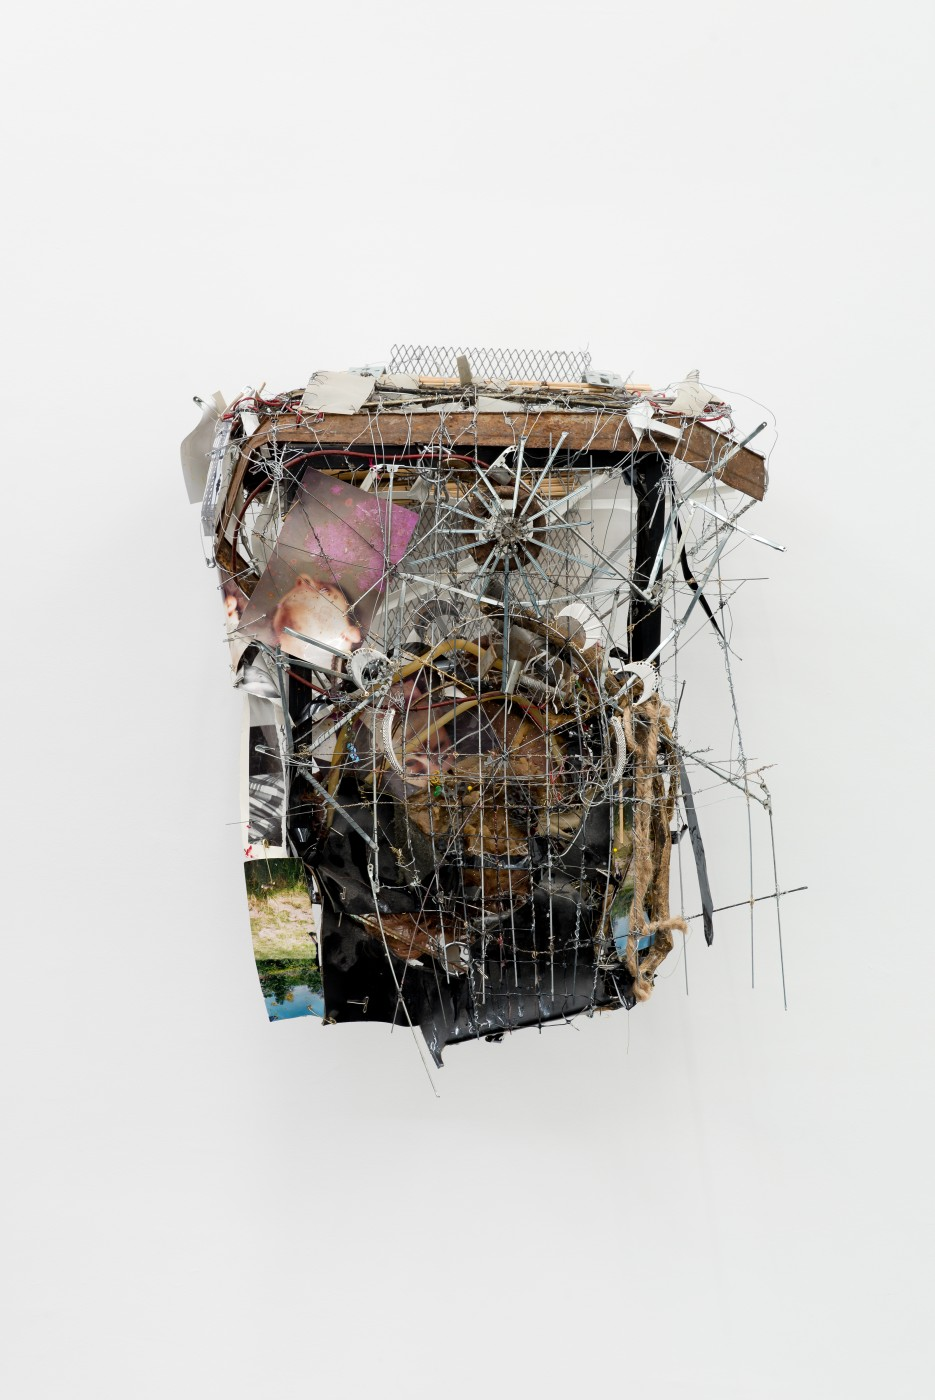 METROPOLITAN  Caracole</I>, 2015 Mixed media 62 x 49 x 31 cm / 24.4 x 19.3 x 12.2 in  ROBERT BITTENBENDER